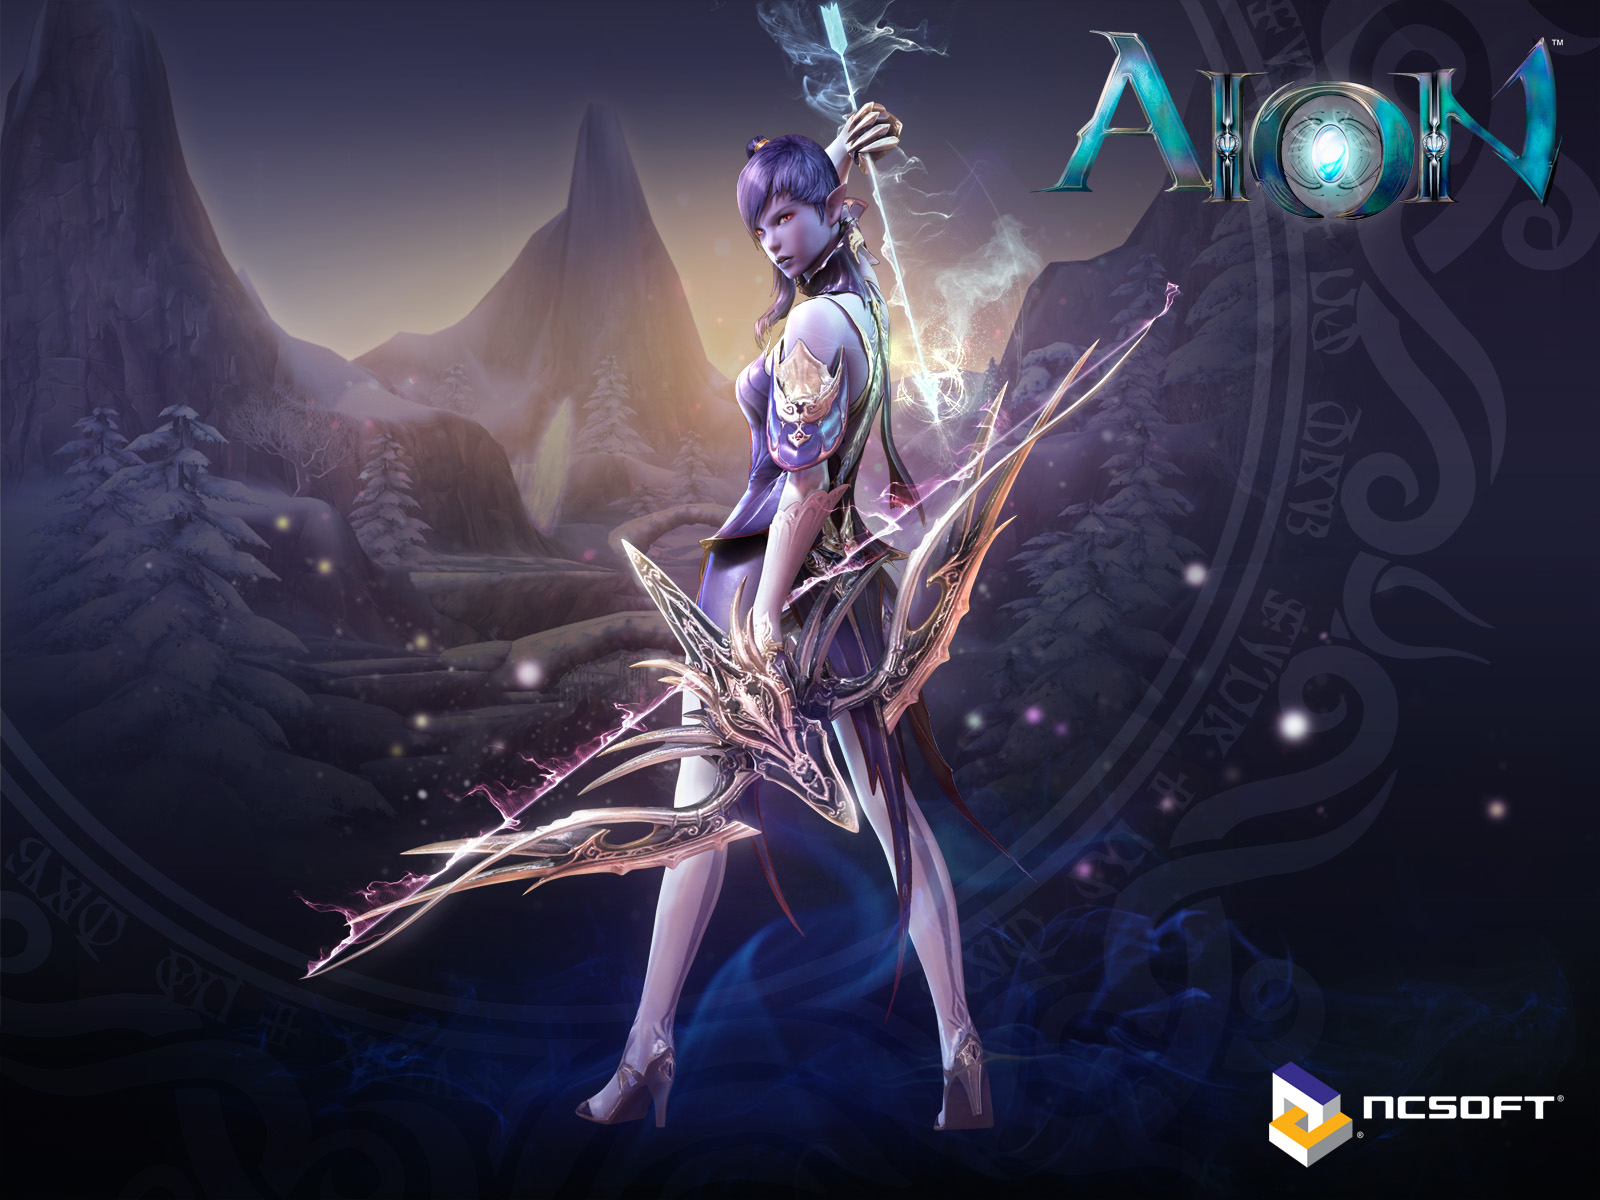 Archers of MMORPG Aion